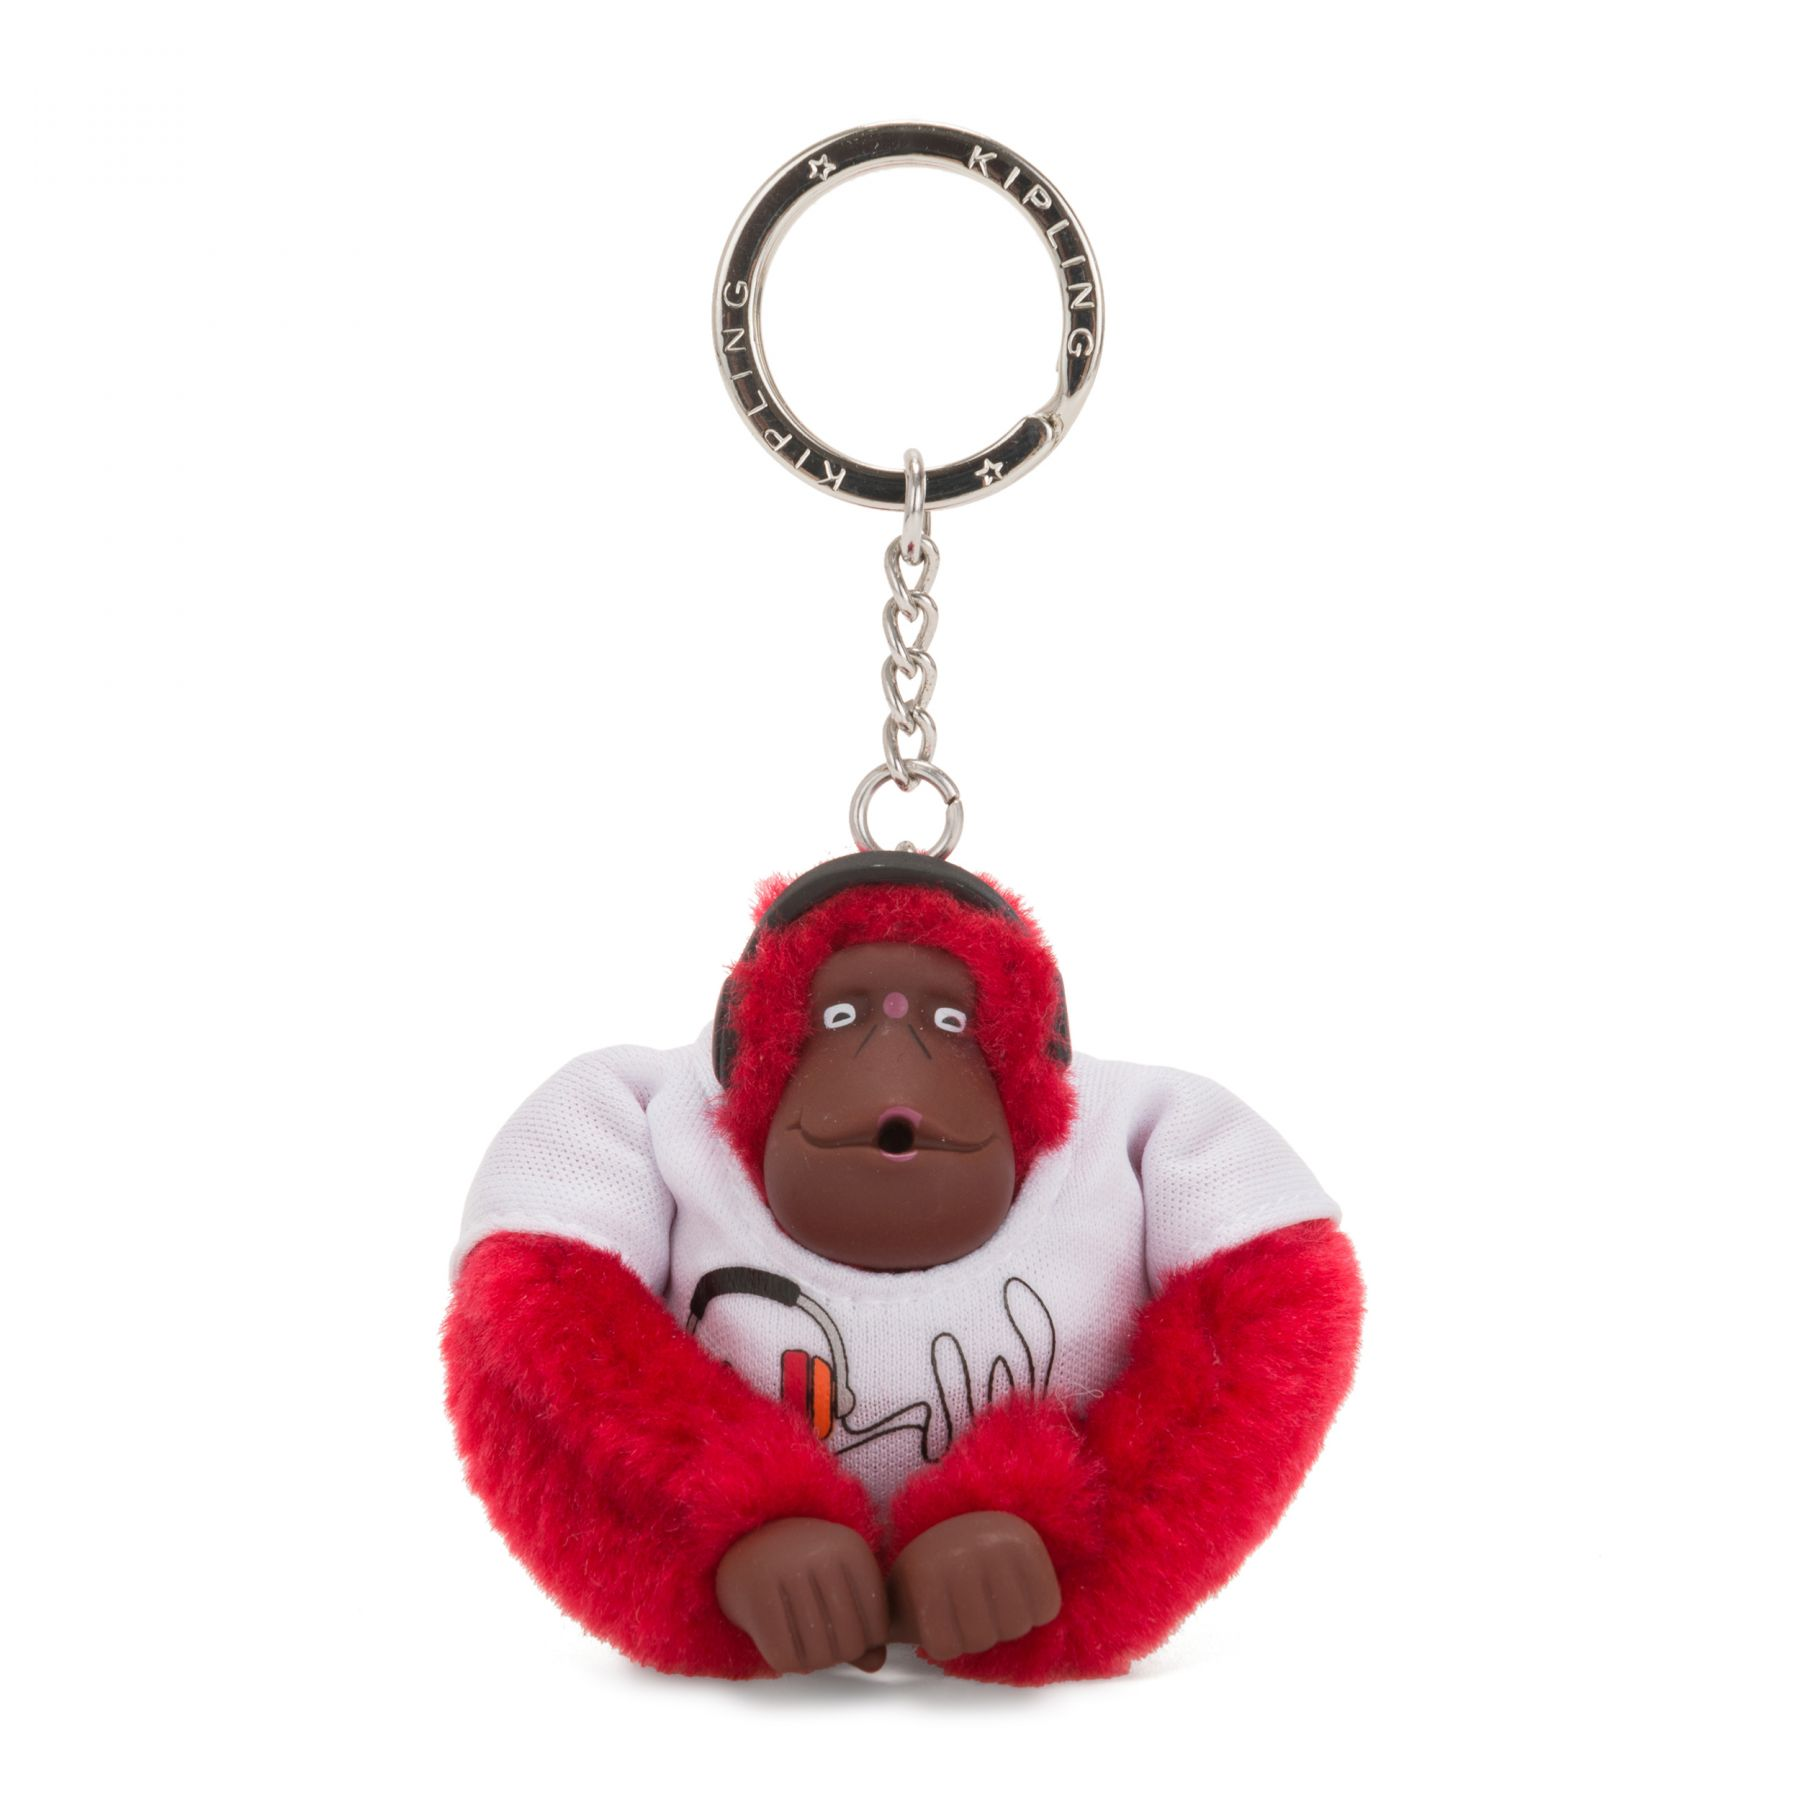 HEADSET MONKEY Latest Accessories by Kipling - Back view